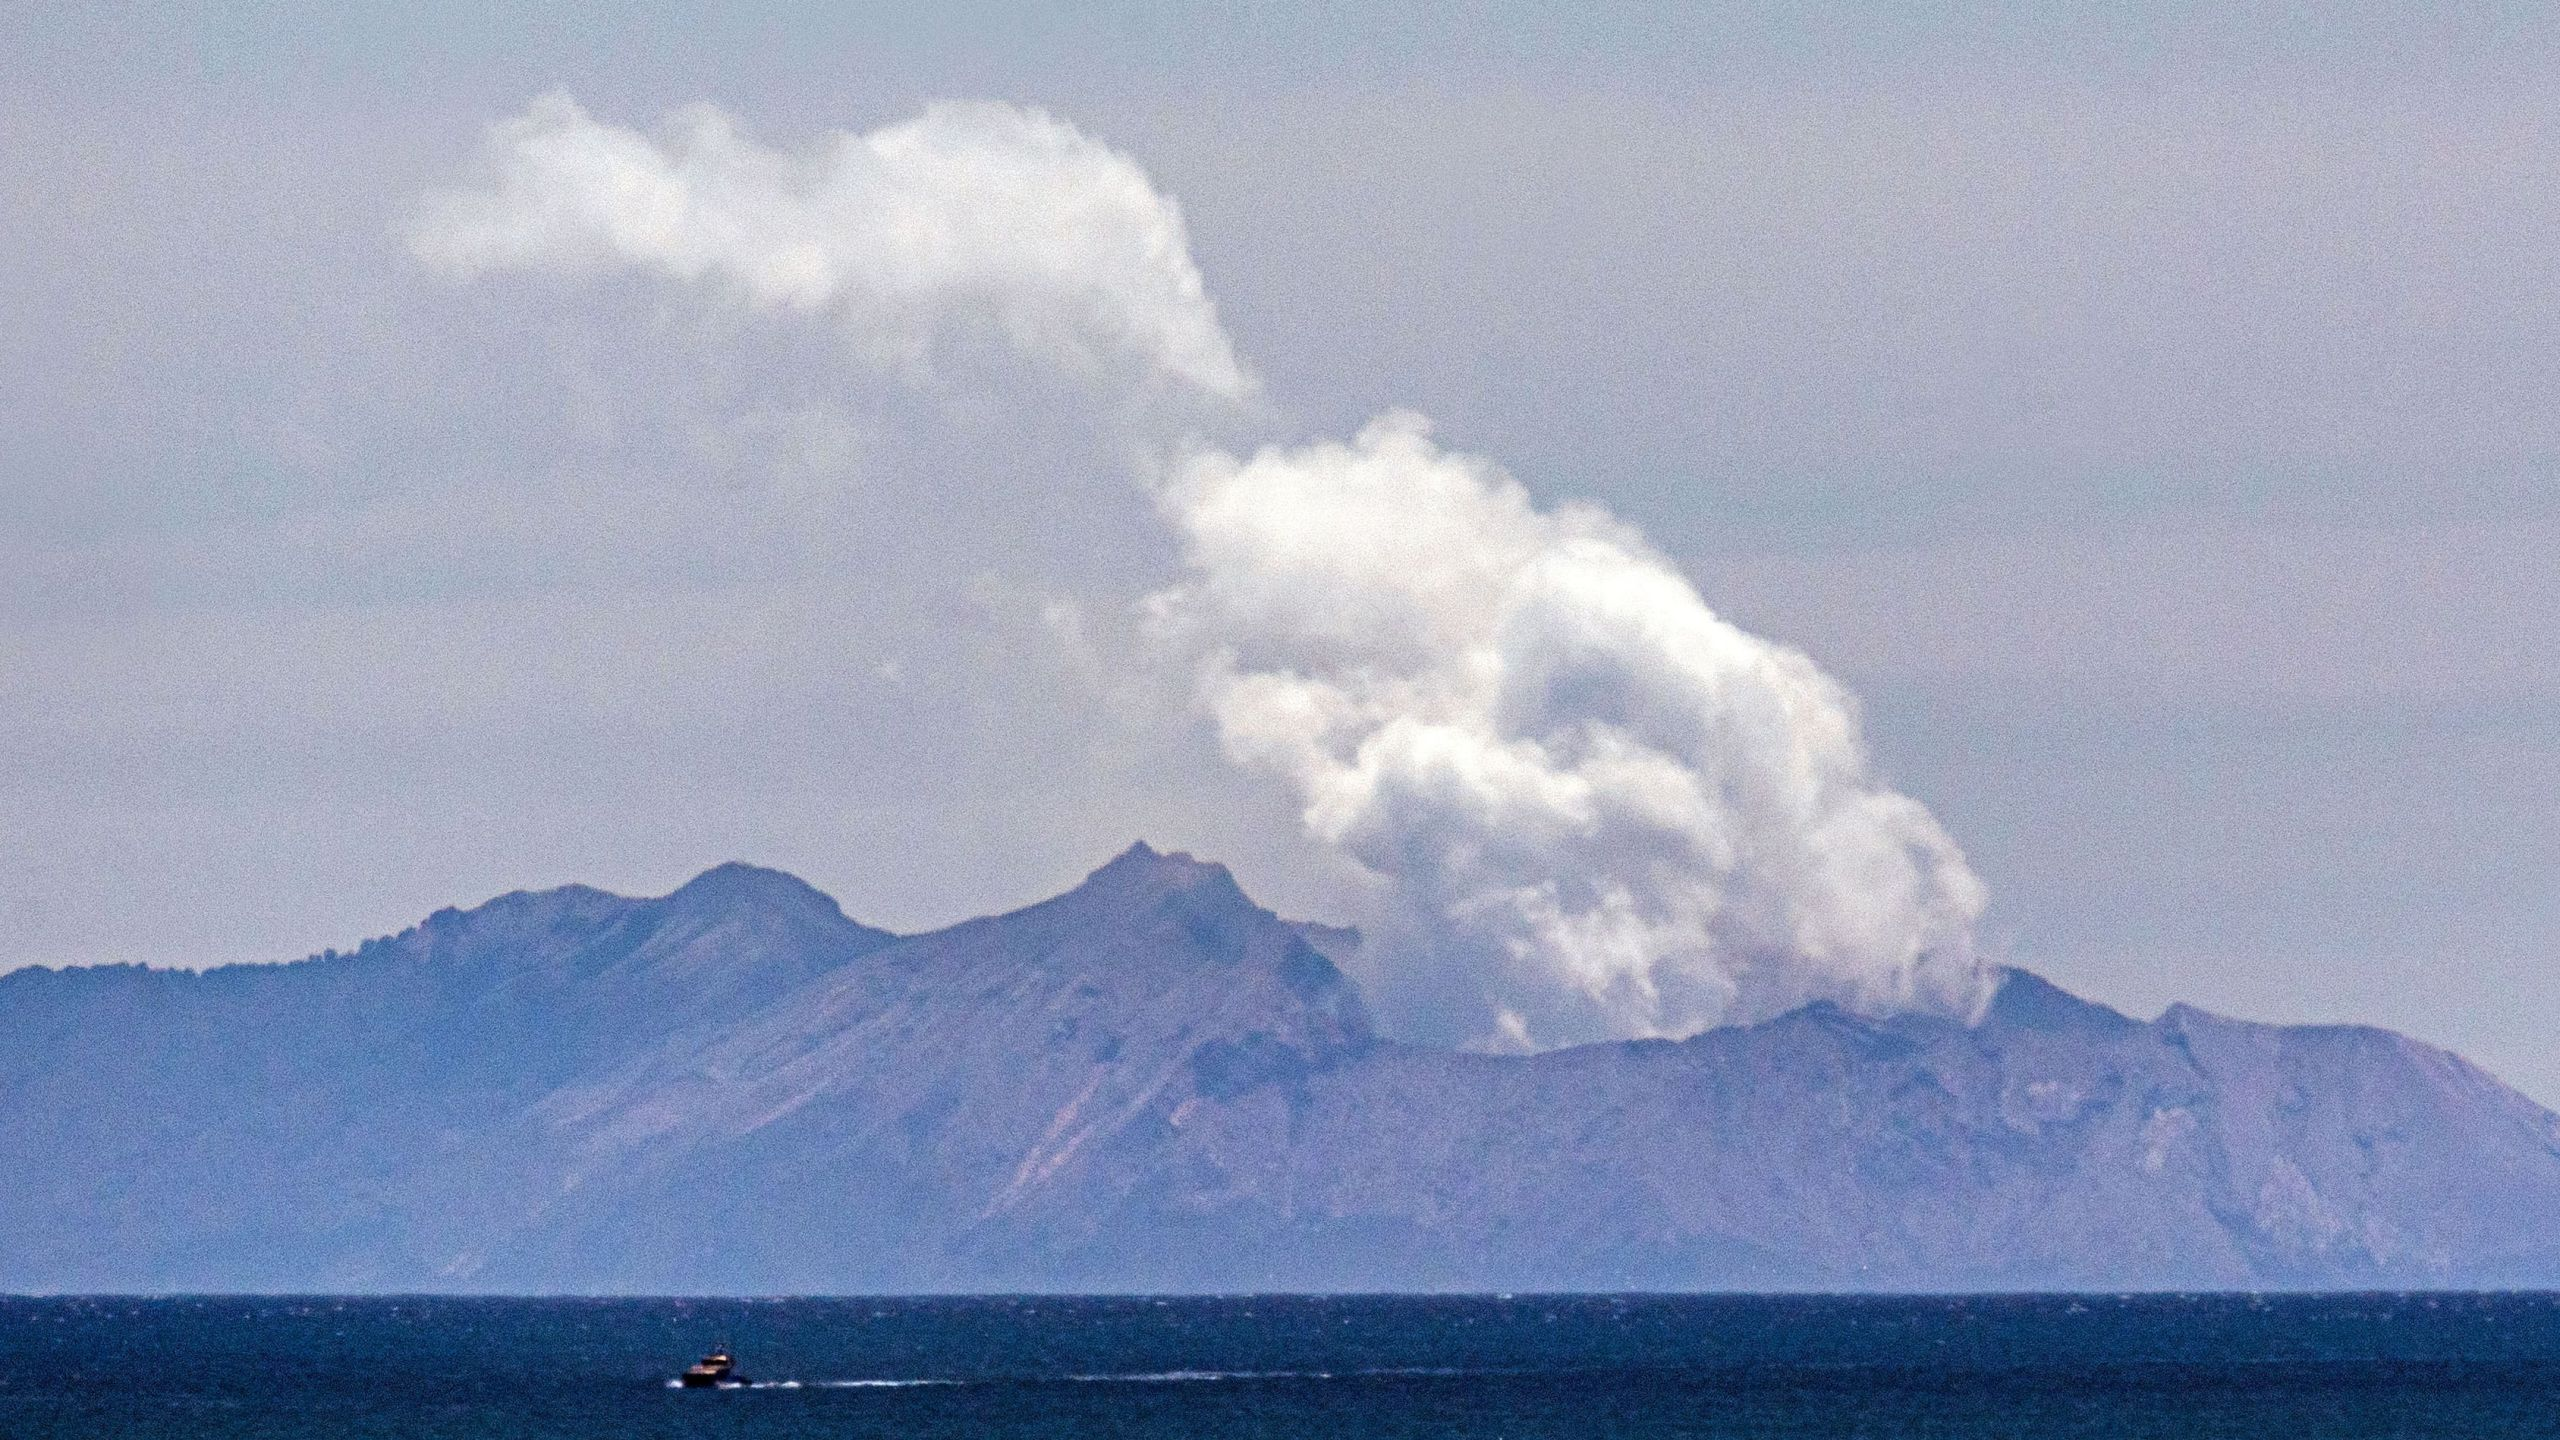 Steam rises from the White Island volcano following the Dec. 9 volcanic eruption in Whakatane on Dec. 11, 2019. (Credit: Marty Melville / AFP / Getty Images)